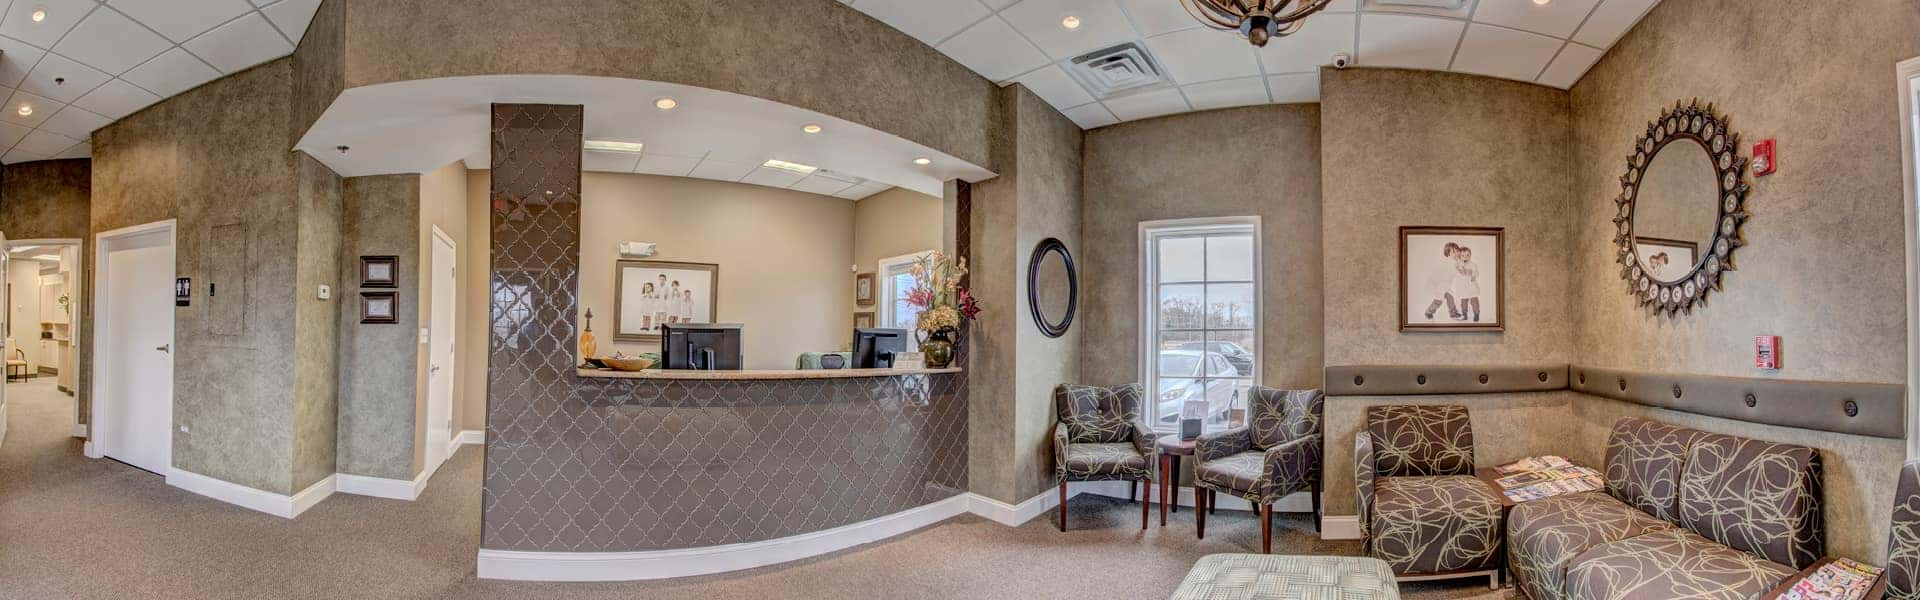 Long Grove Dental Studio